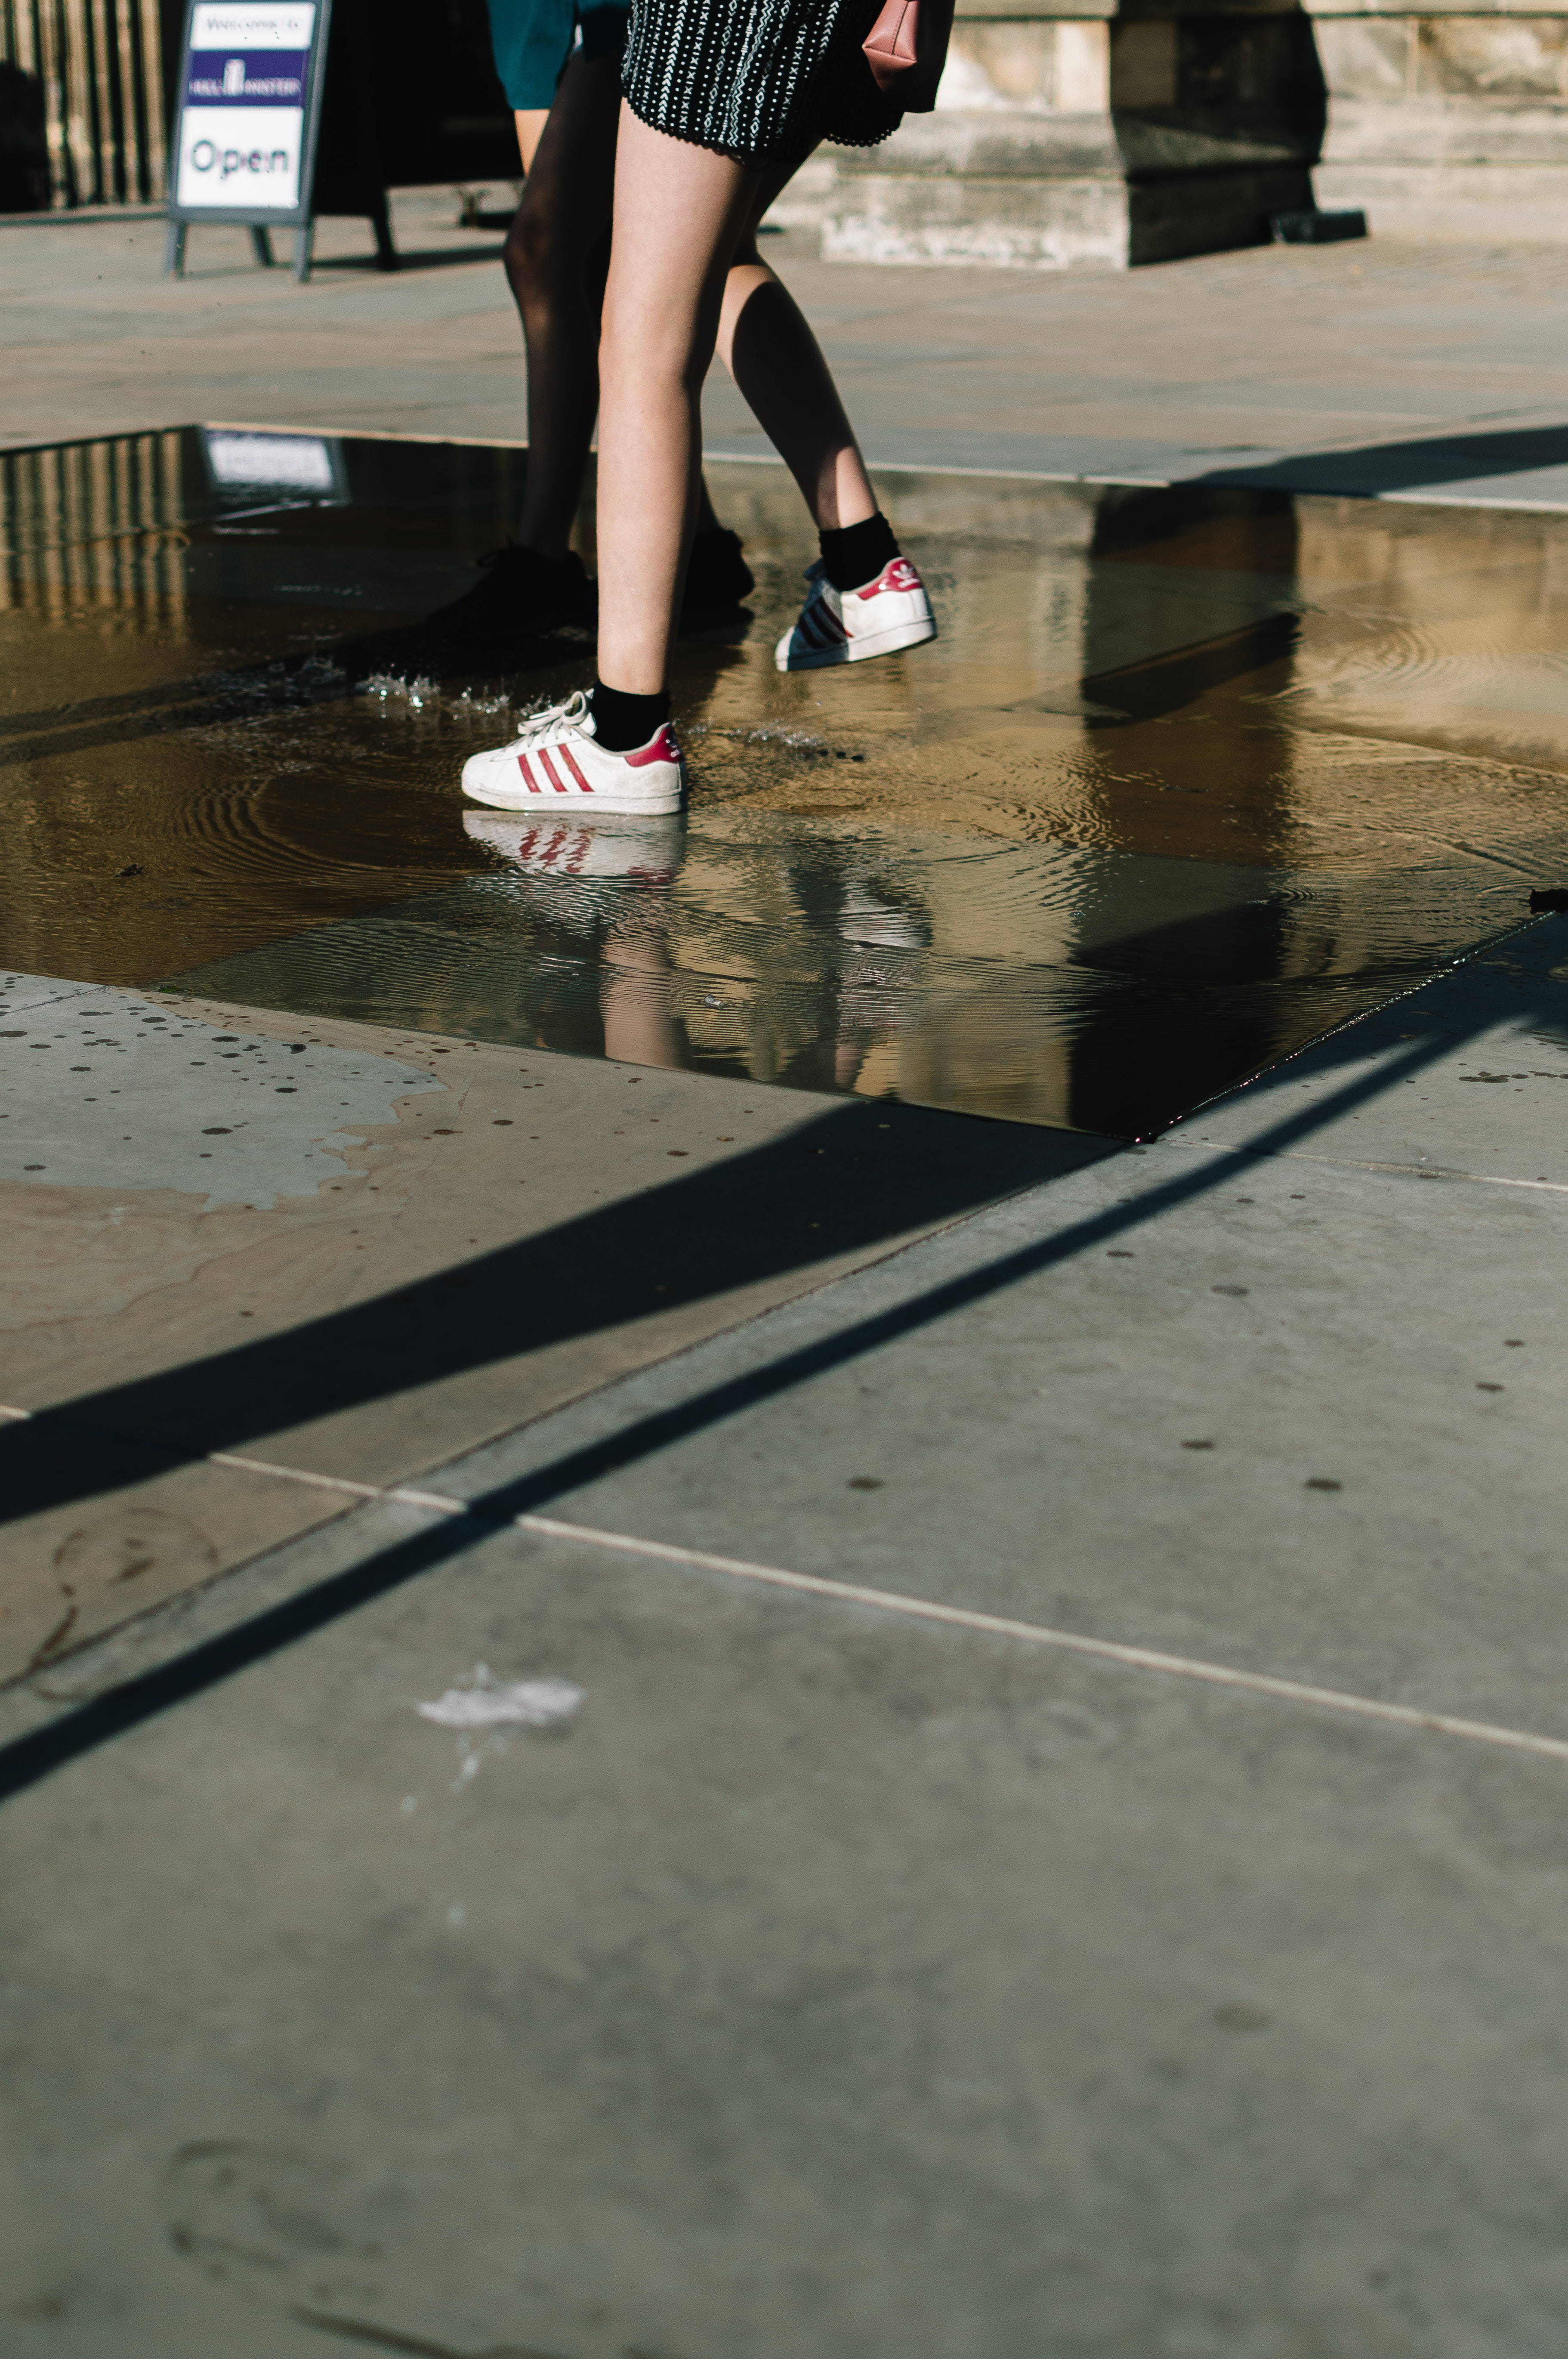 person wearing white-and-red adidas sneakers stepping on puddle of water